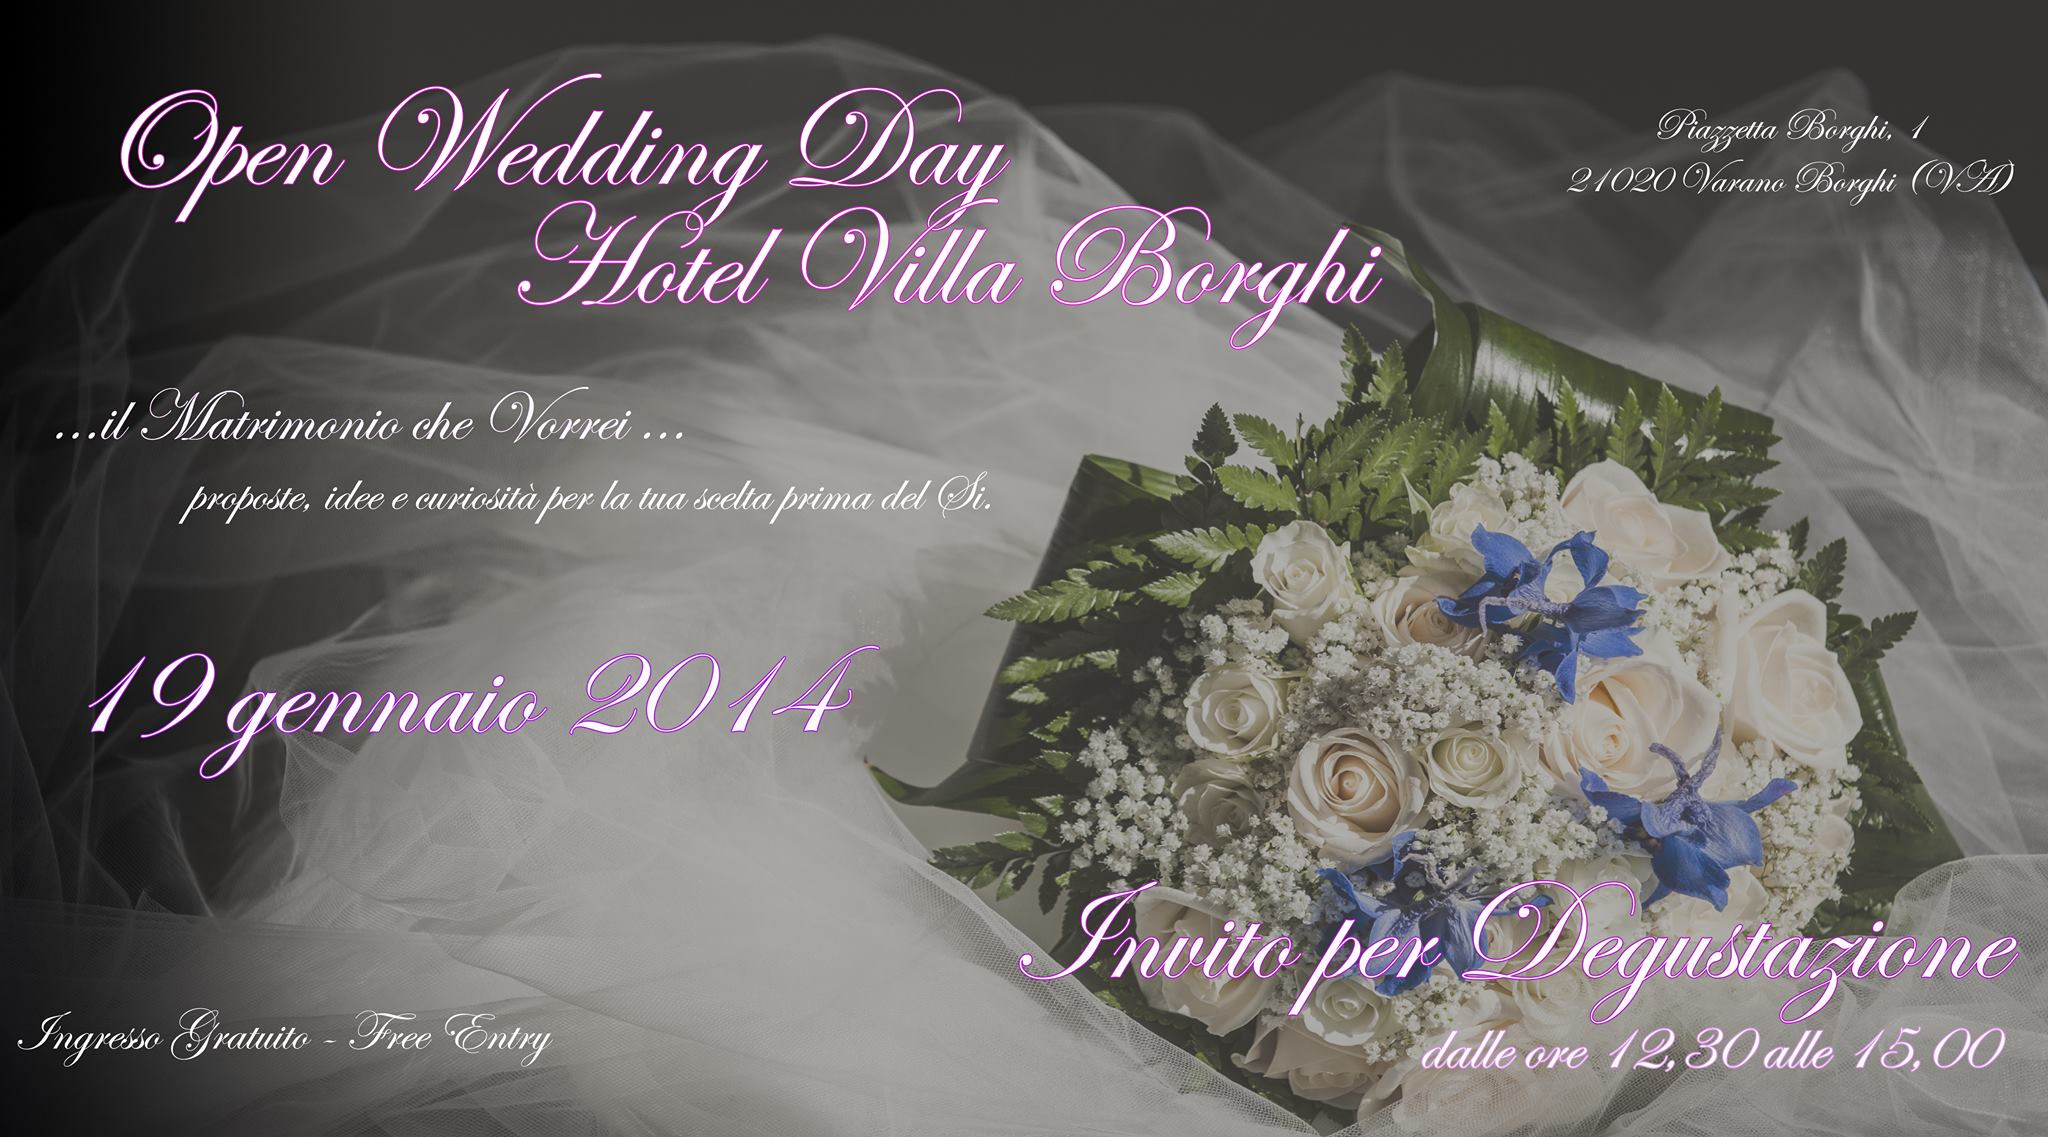 Open Wedding Day Hotel Villa Borghi